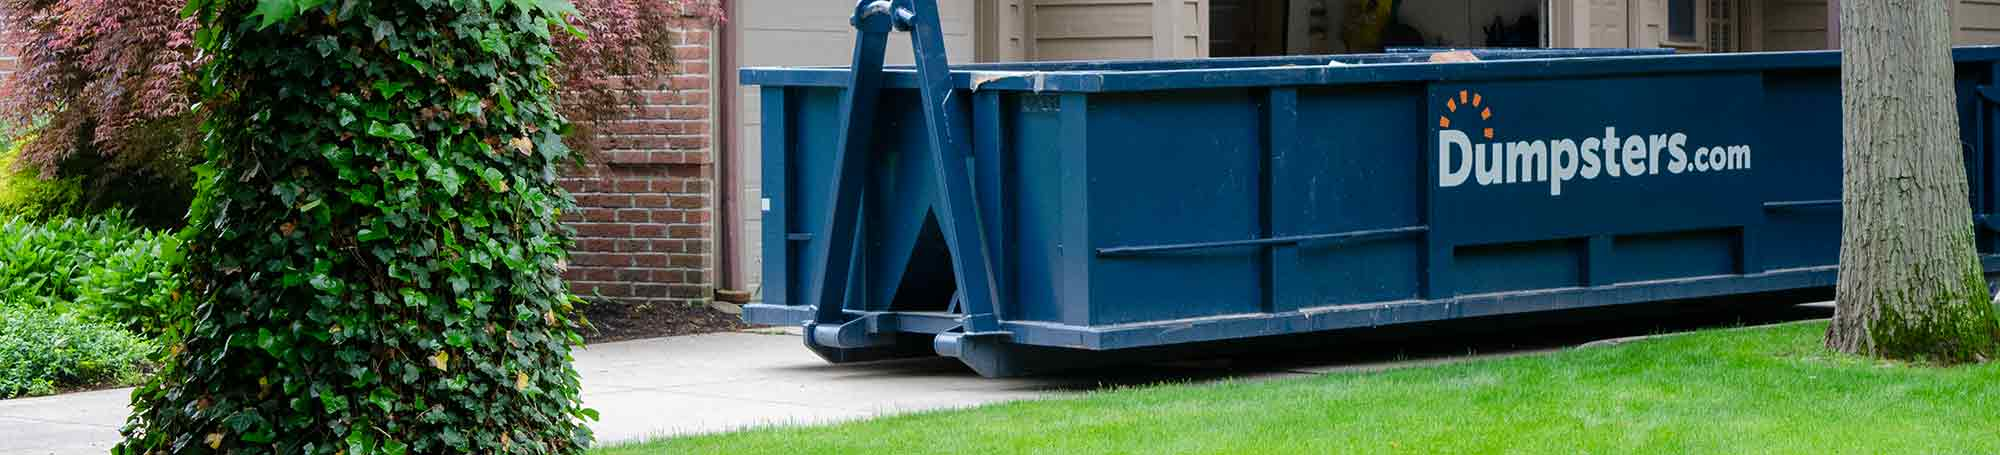 Roll Off Dumpster in Residential Driveway Next to House.